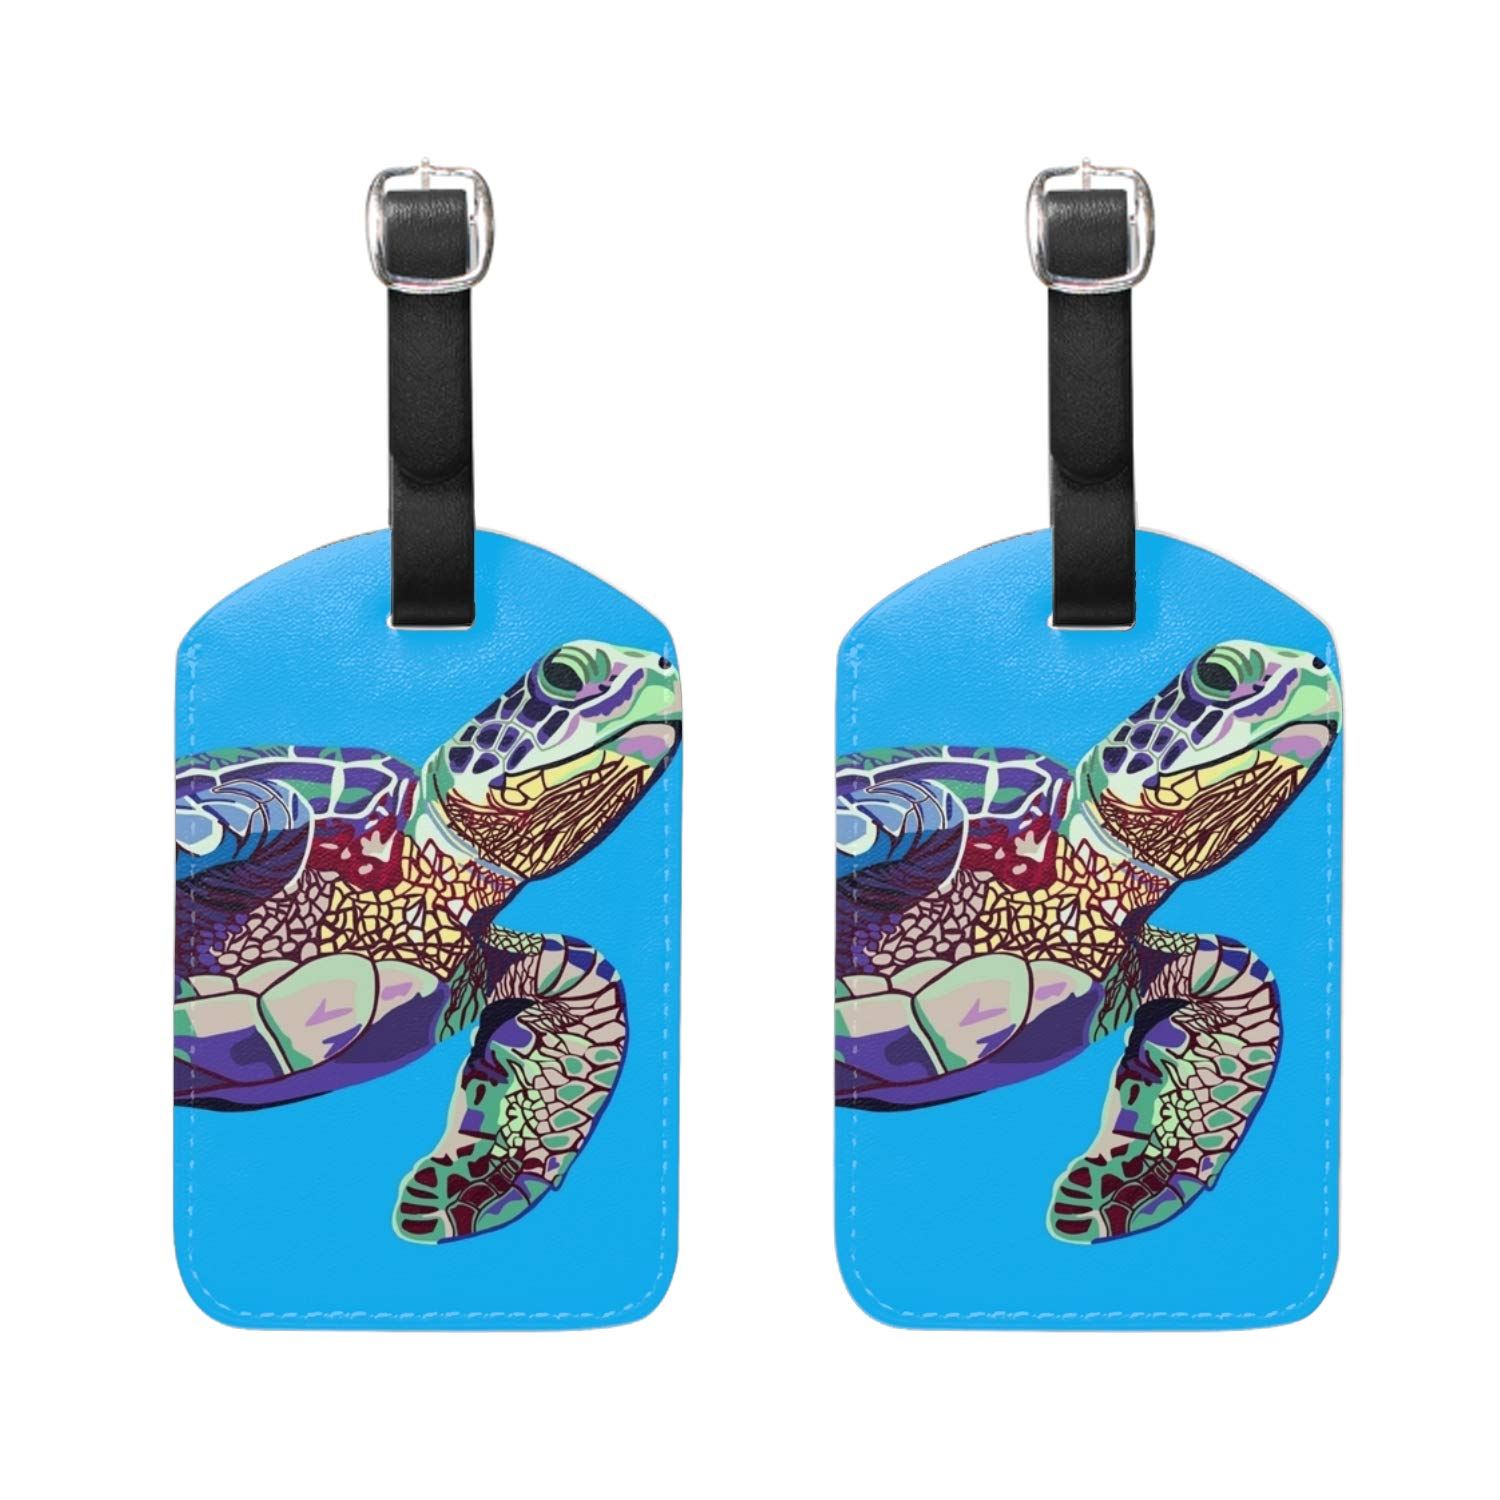 Amazing Galaxy PU Leather Luggage Tags Travel Bag Labels Suitcase Baggage 2PCS